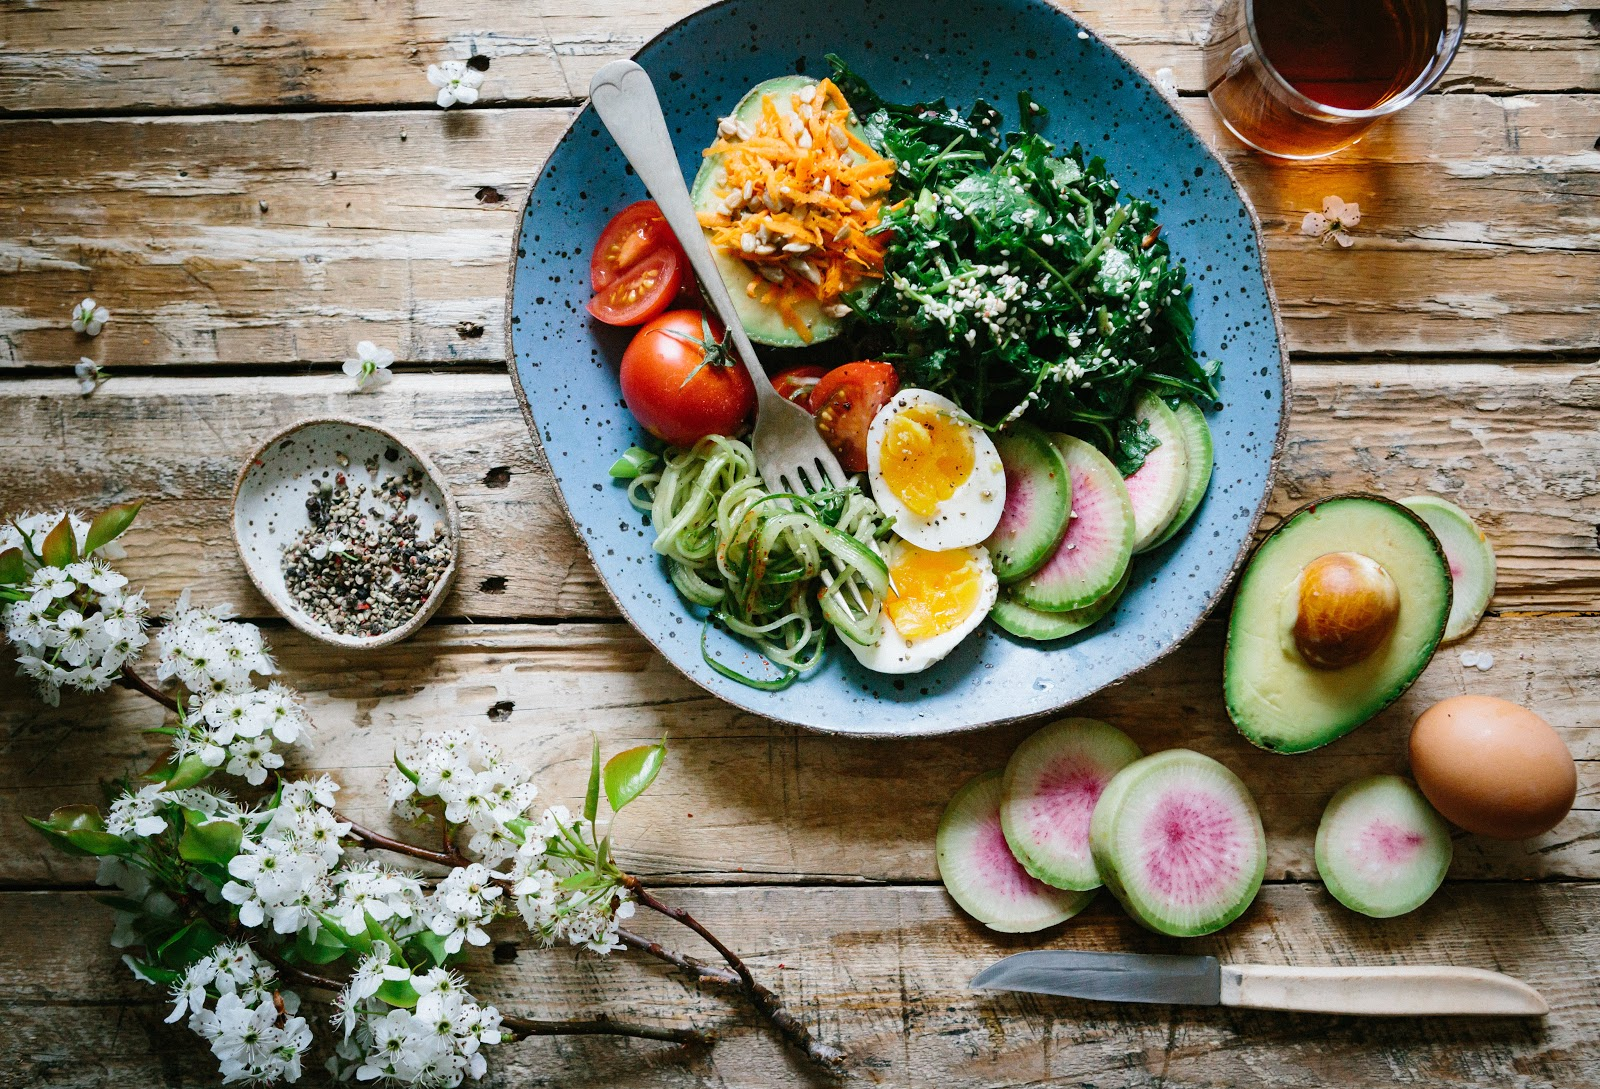 Avocado, egg, and tomato salad dish on a table with leftover ingredients on the side.